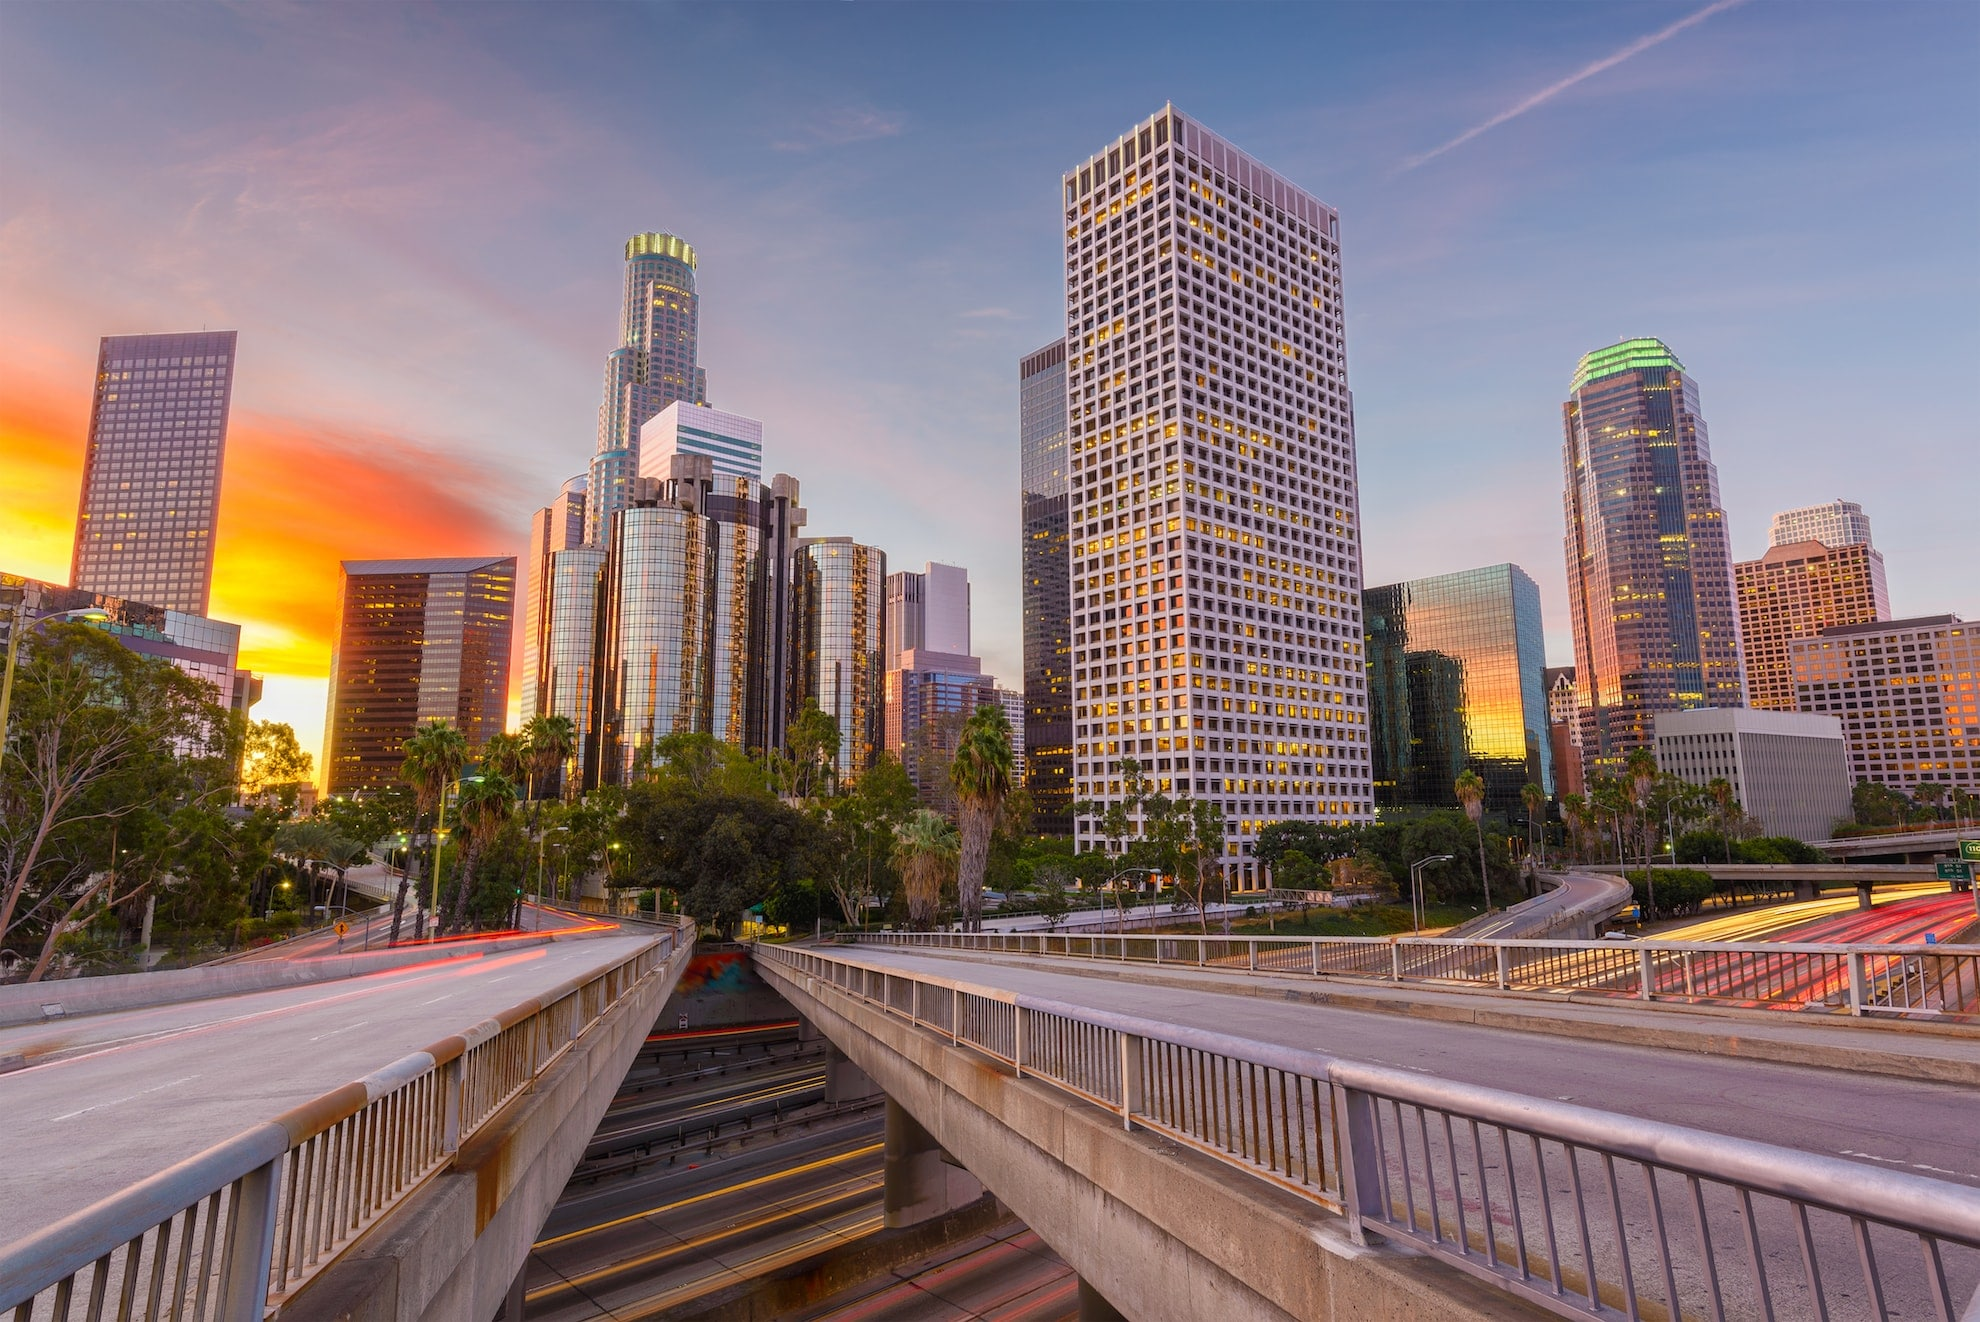 los angeles california usa skyline-Google AdWords Consultant